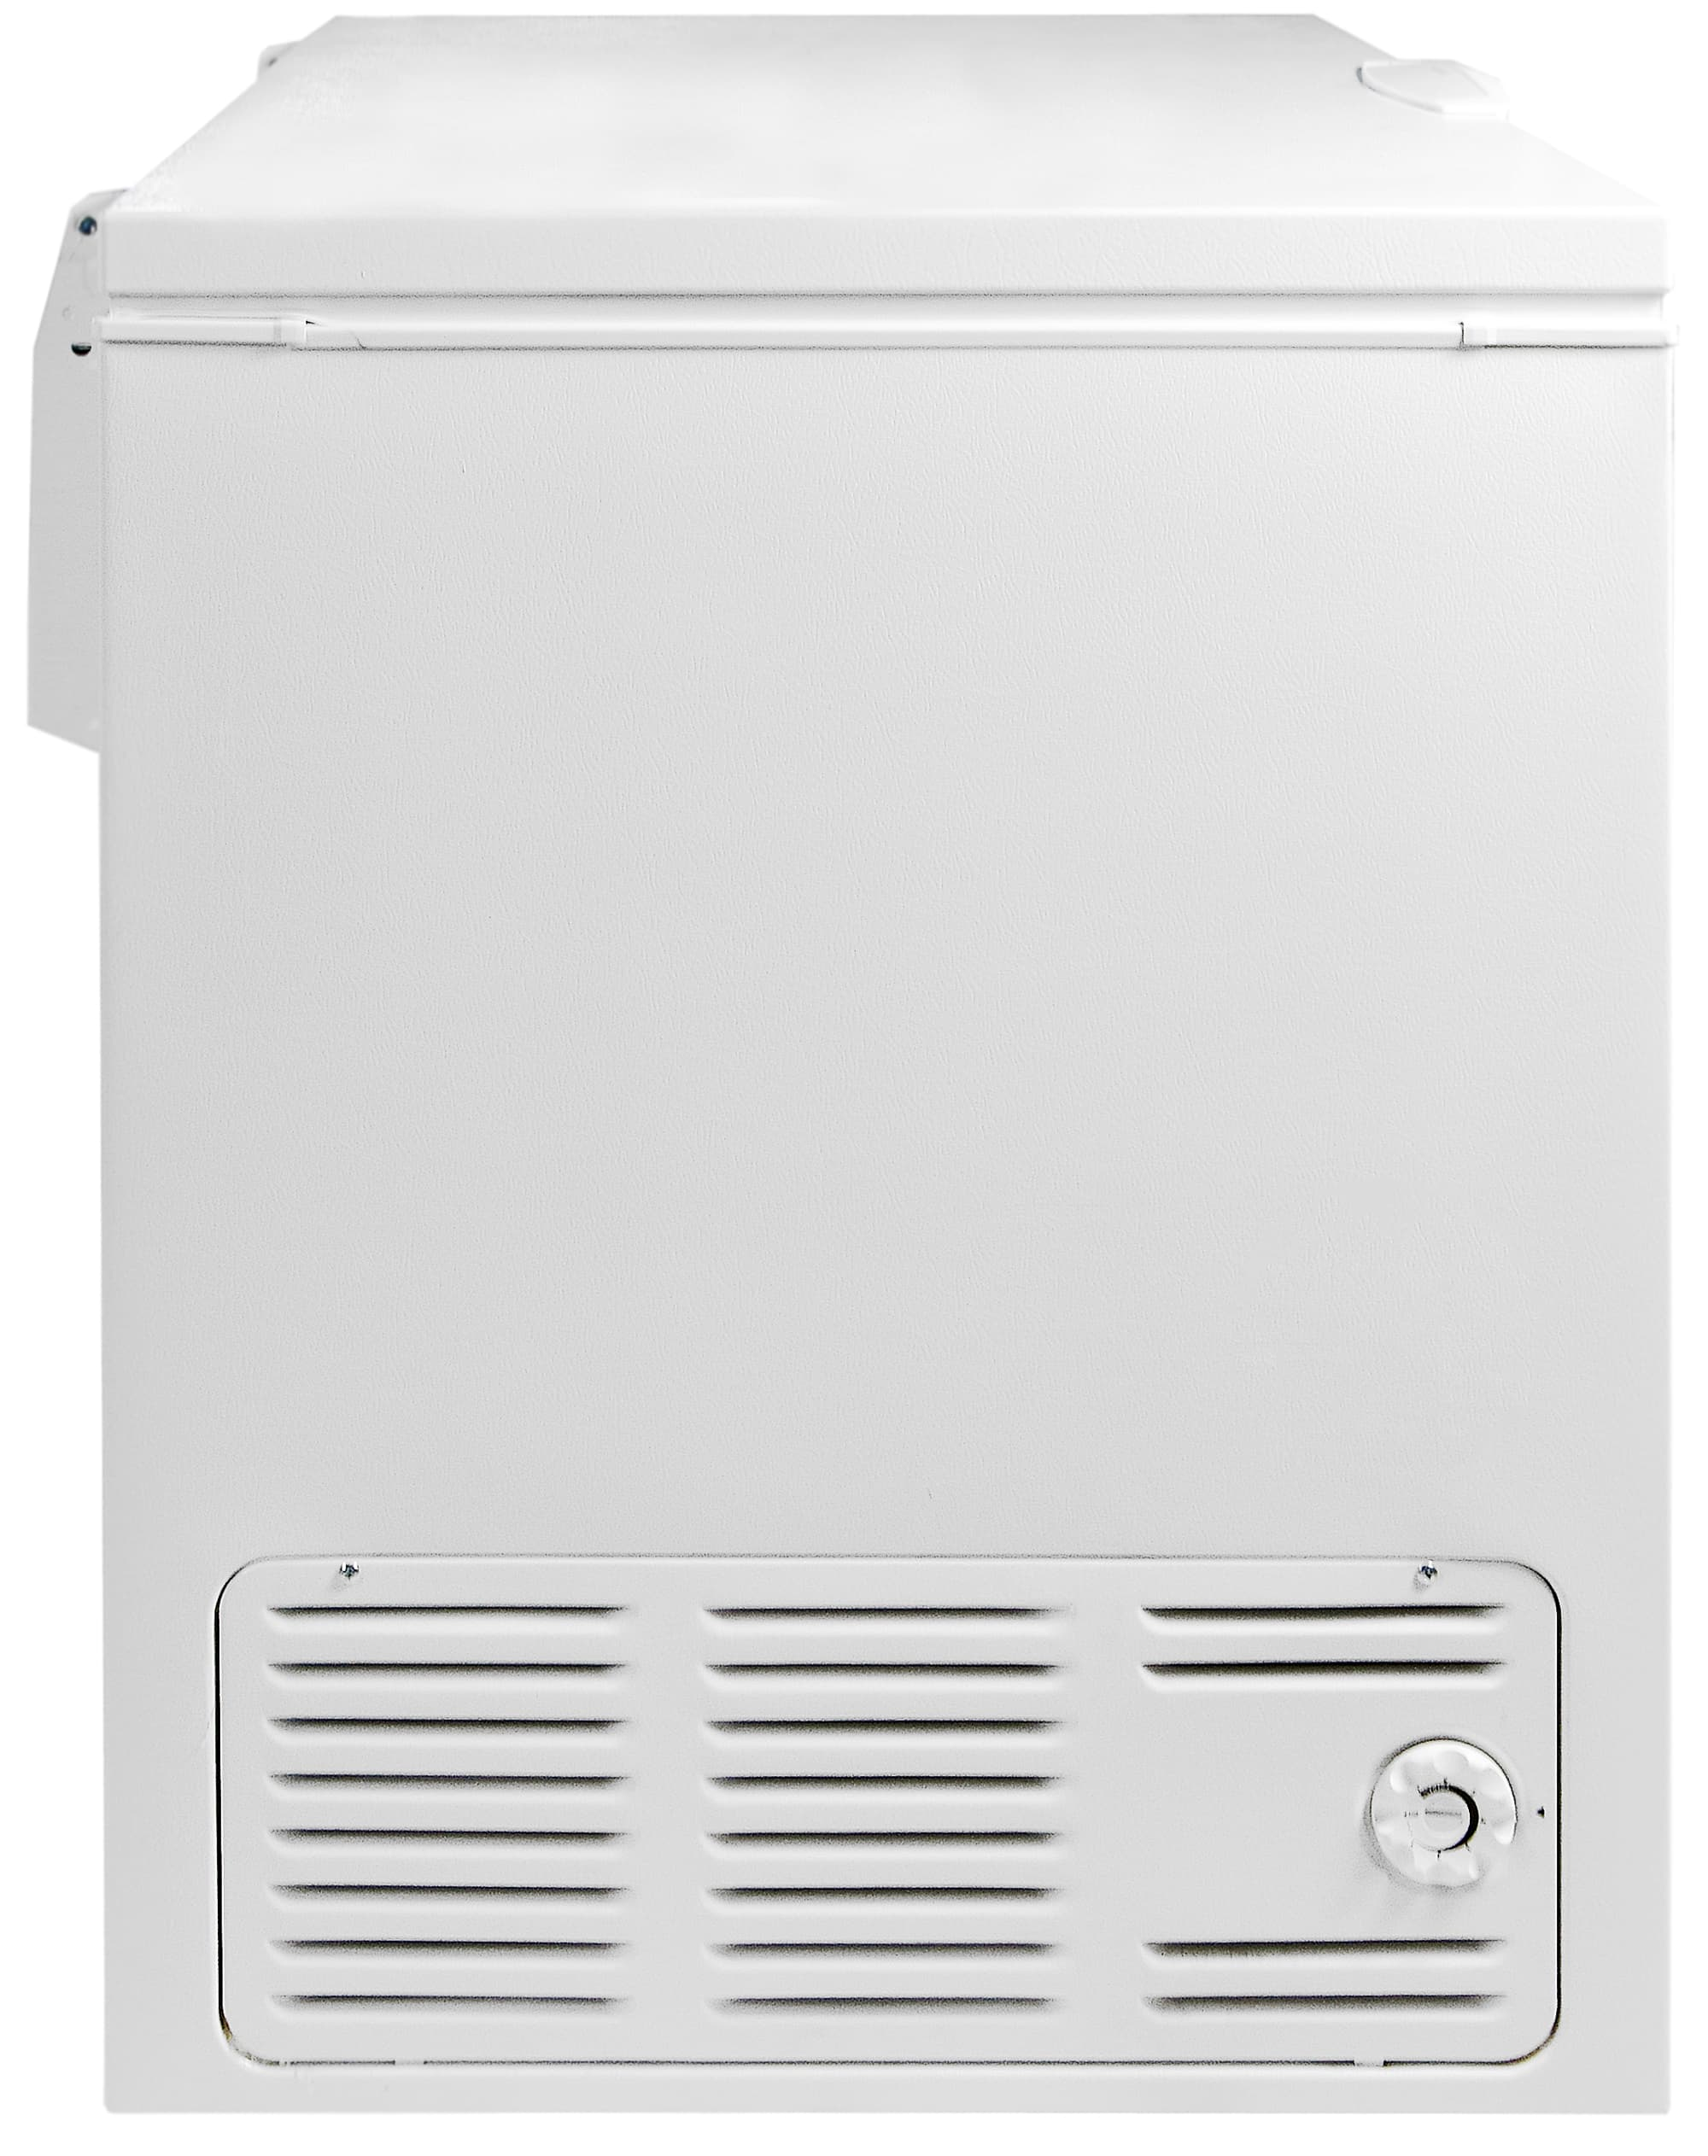 The controls are located on the left side of the Frigidaire Gallery FGCH25M8LW next to an air vent.